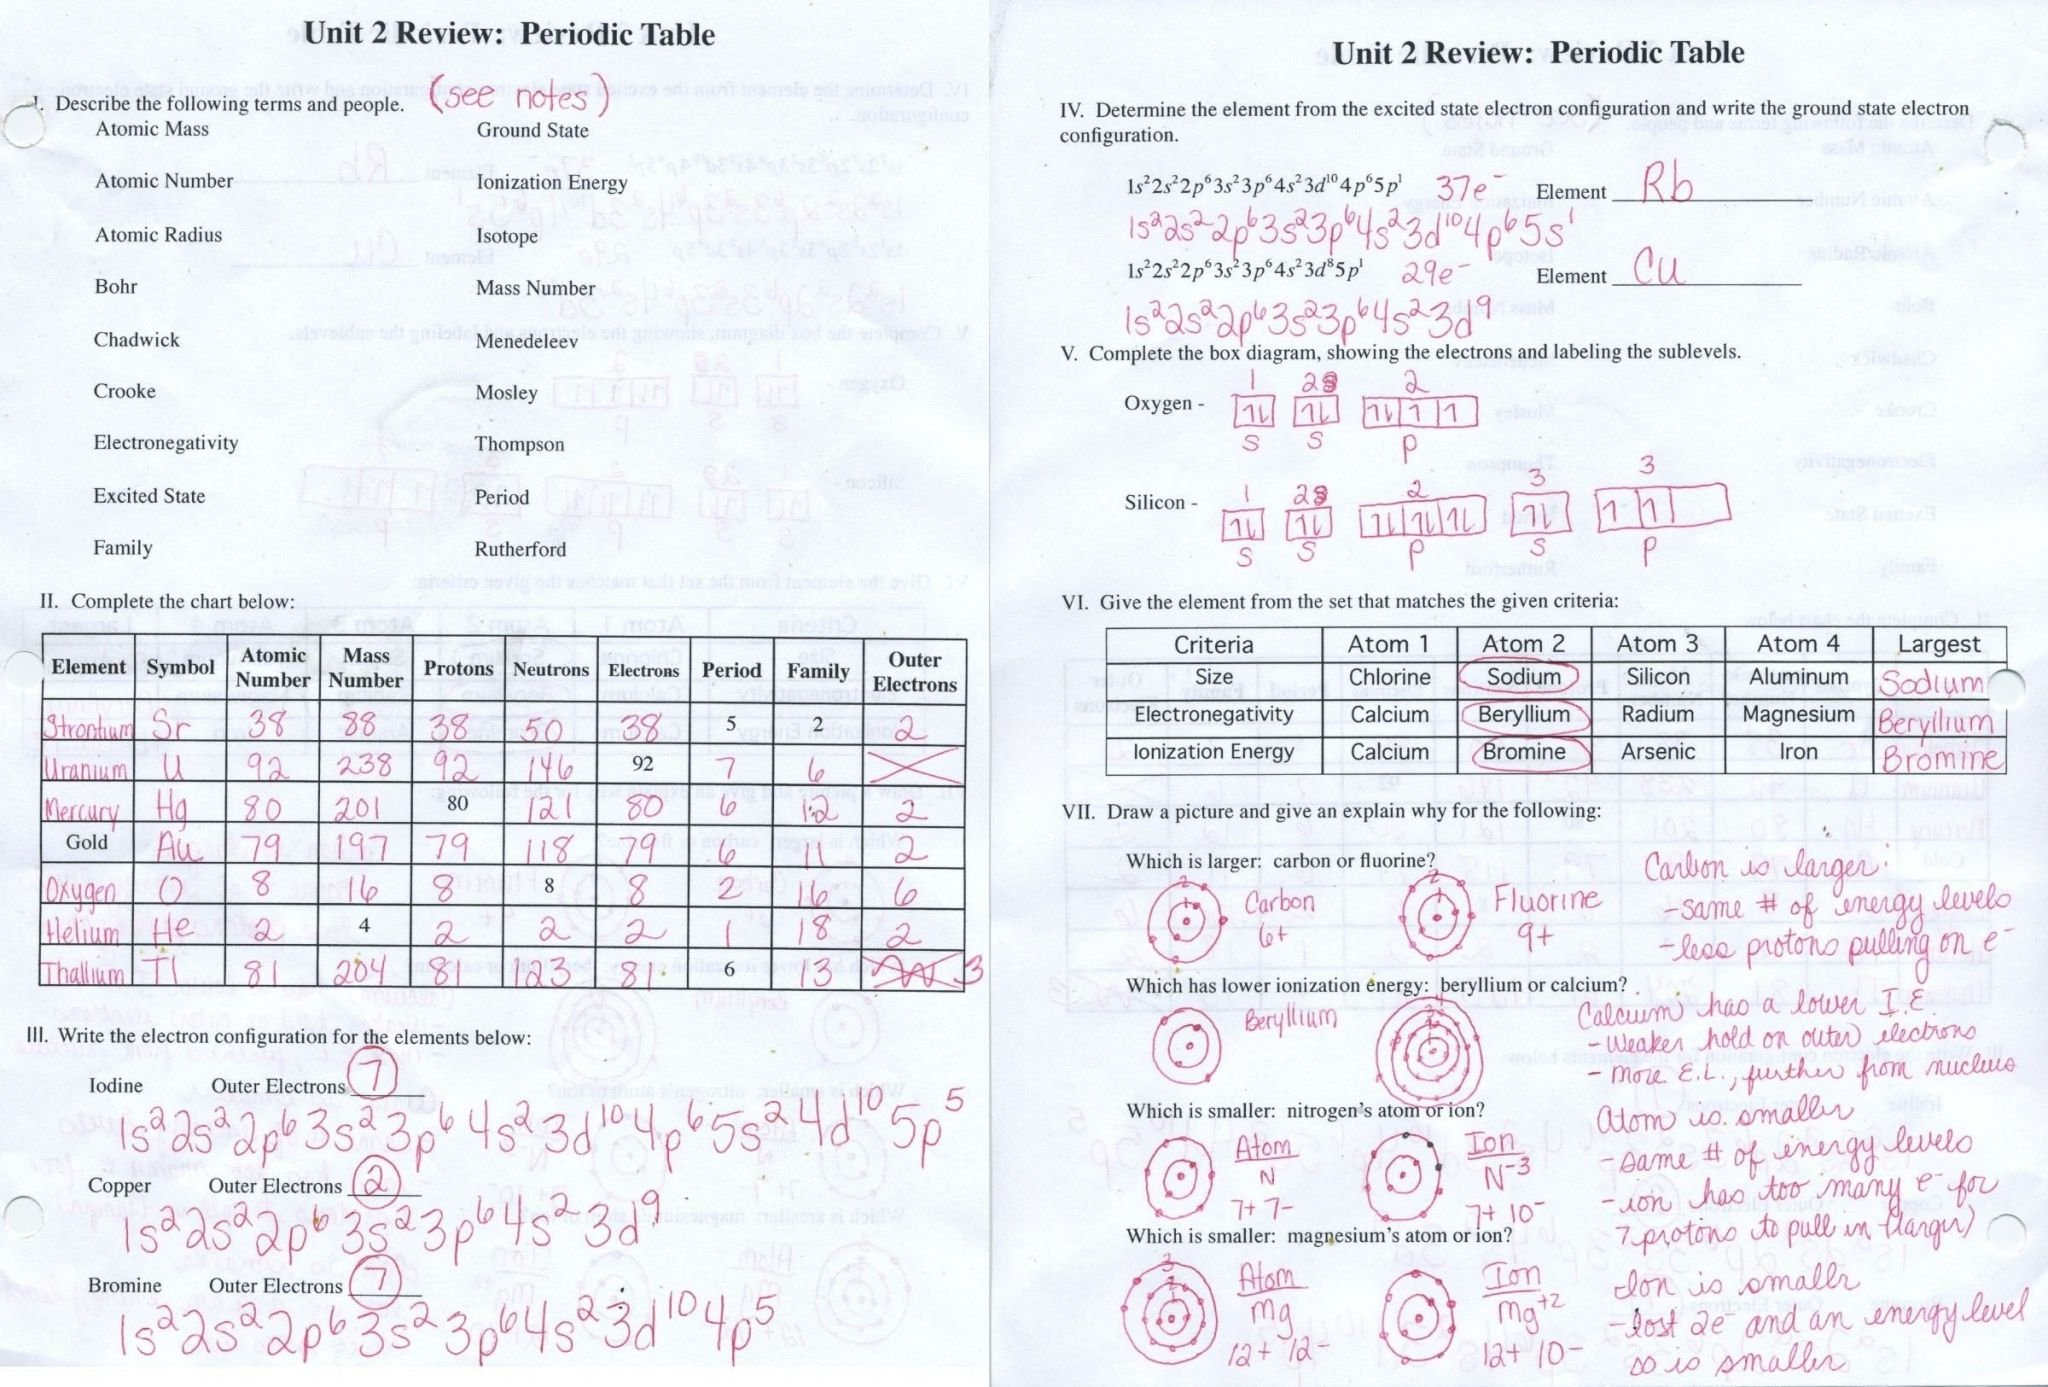 Isotopes Ions And Atoms Worksheet 1 Answer Key  Briefencounters In Isotopes Ions And Atoms Worksheet 1 Answers